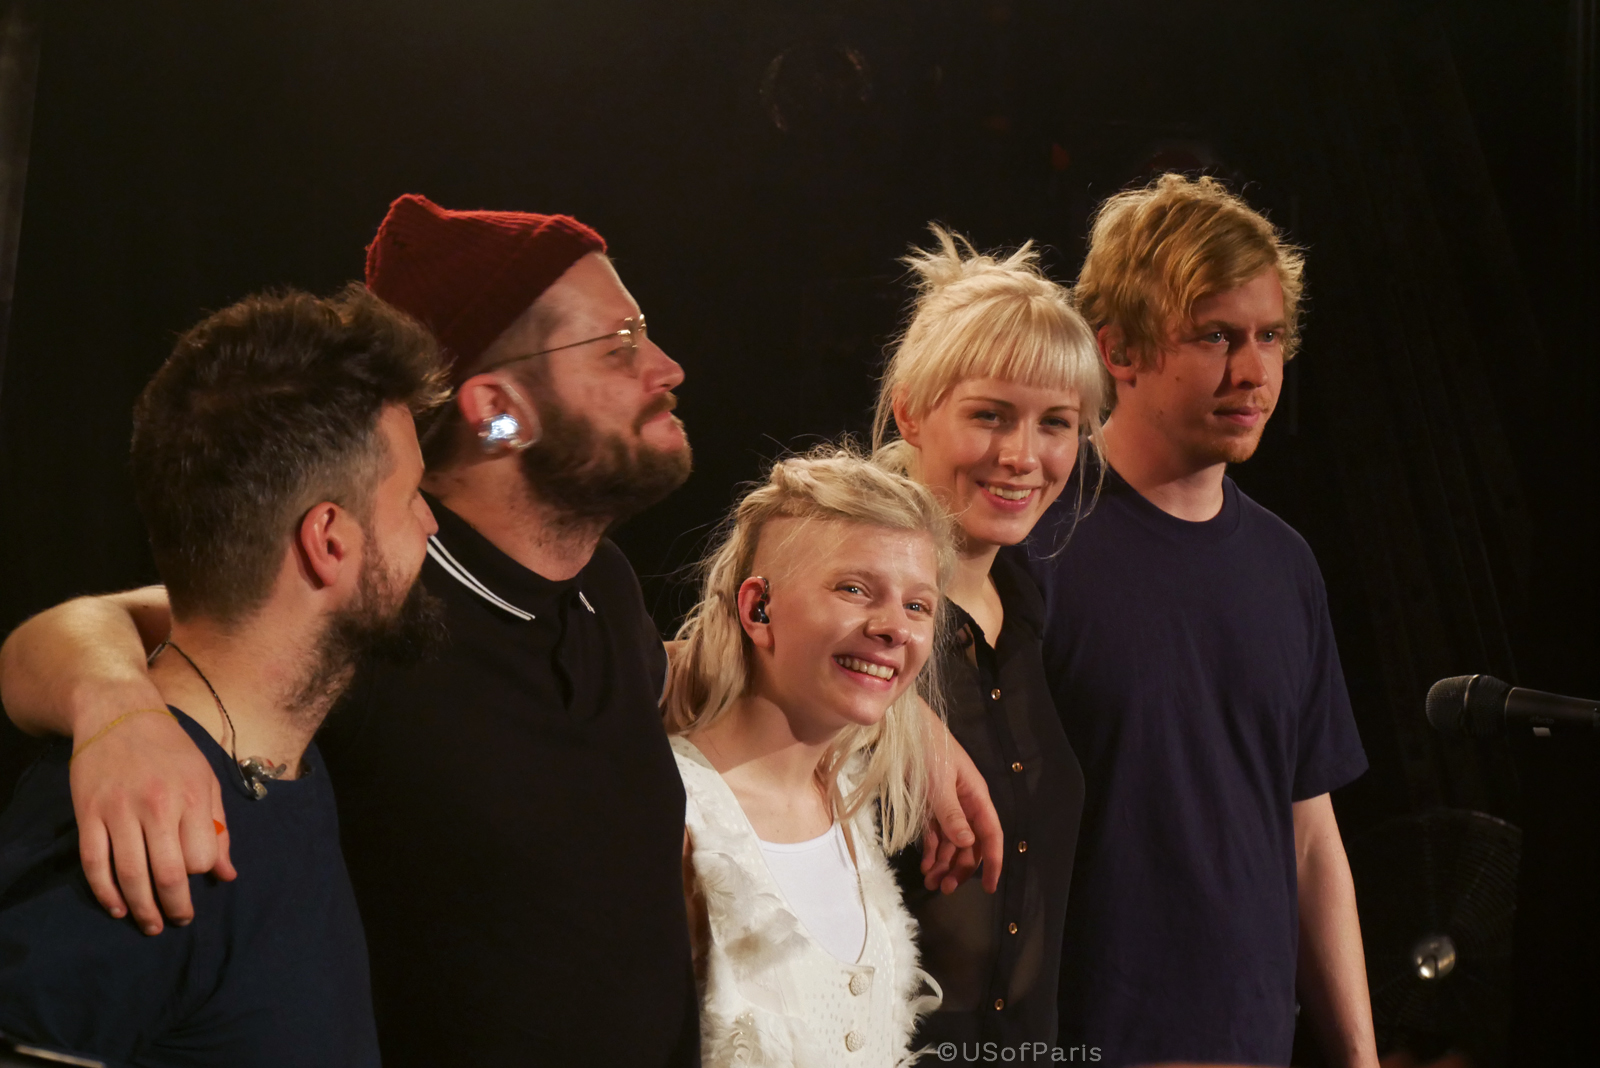 aurora-music-singer-smile-with-her-band-magnus-skylstad-concert-live-paris-stage-photo-usofparis-blog